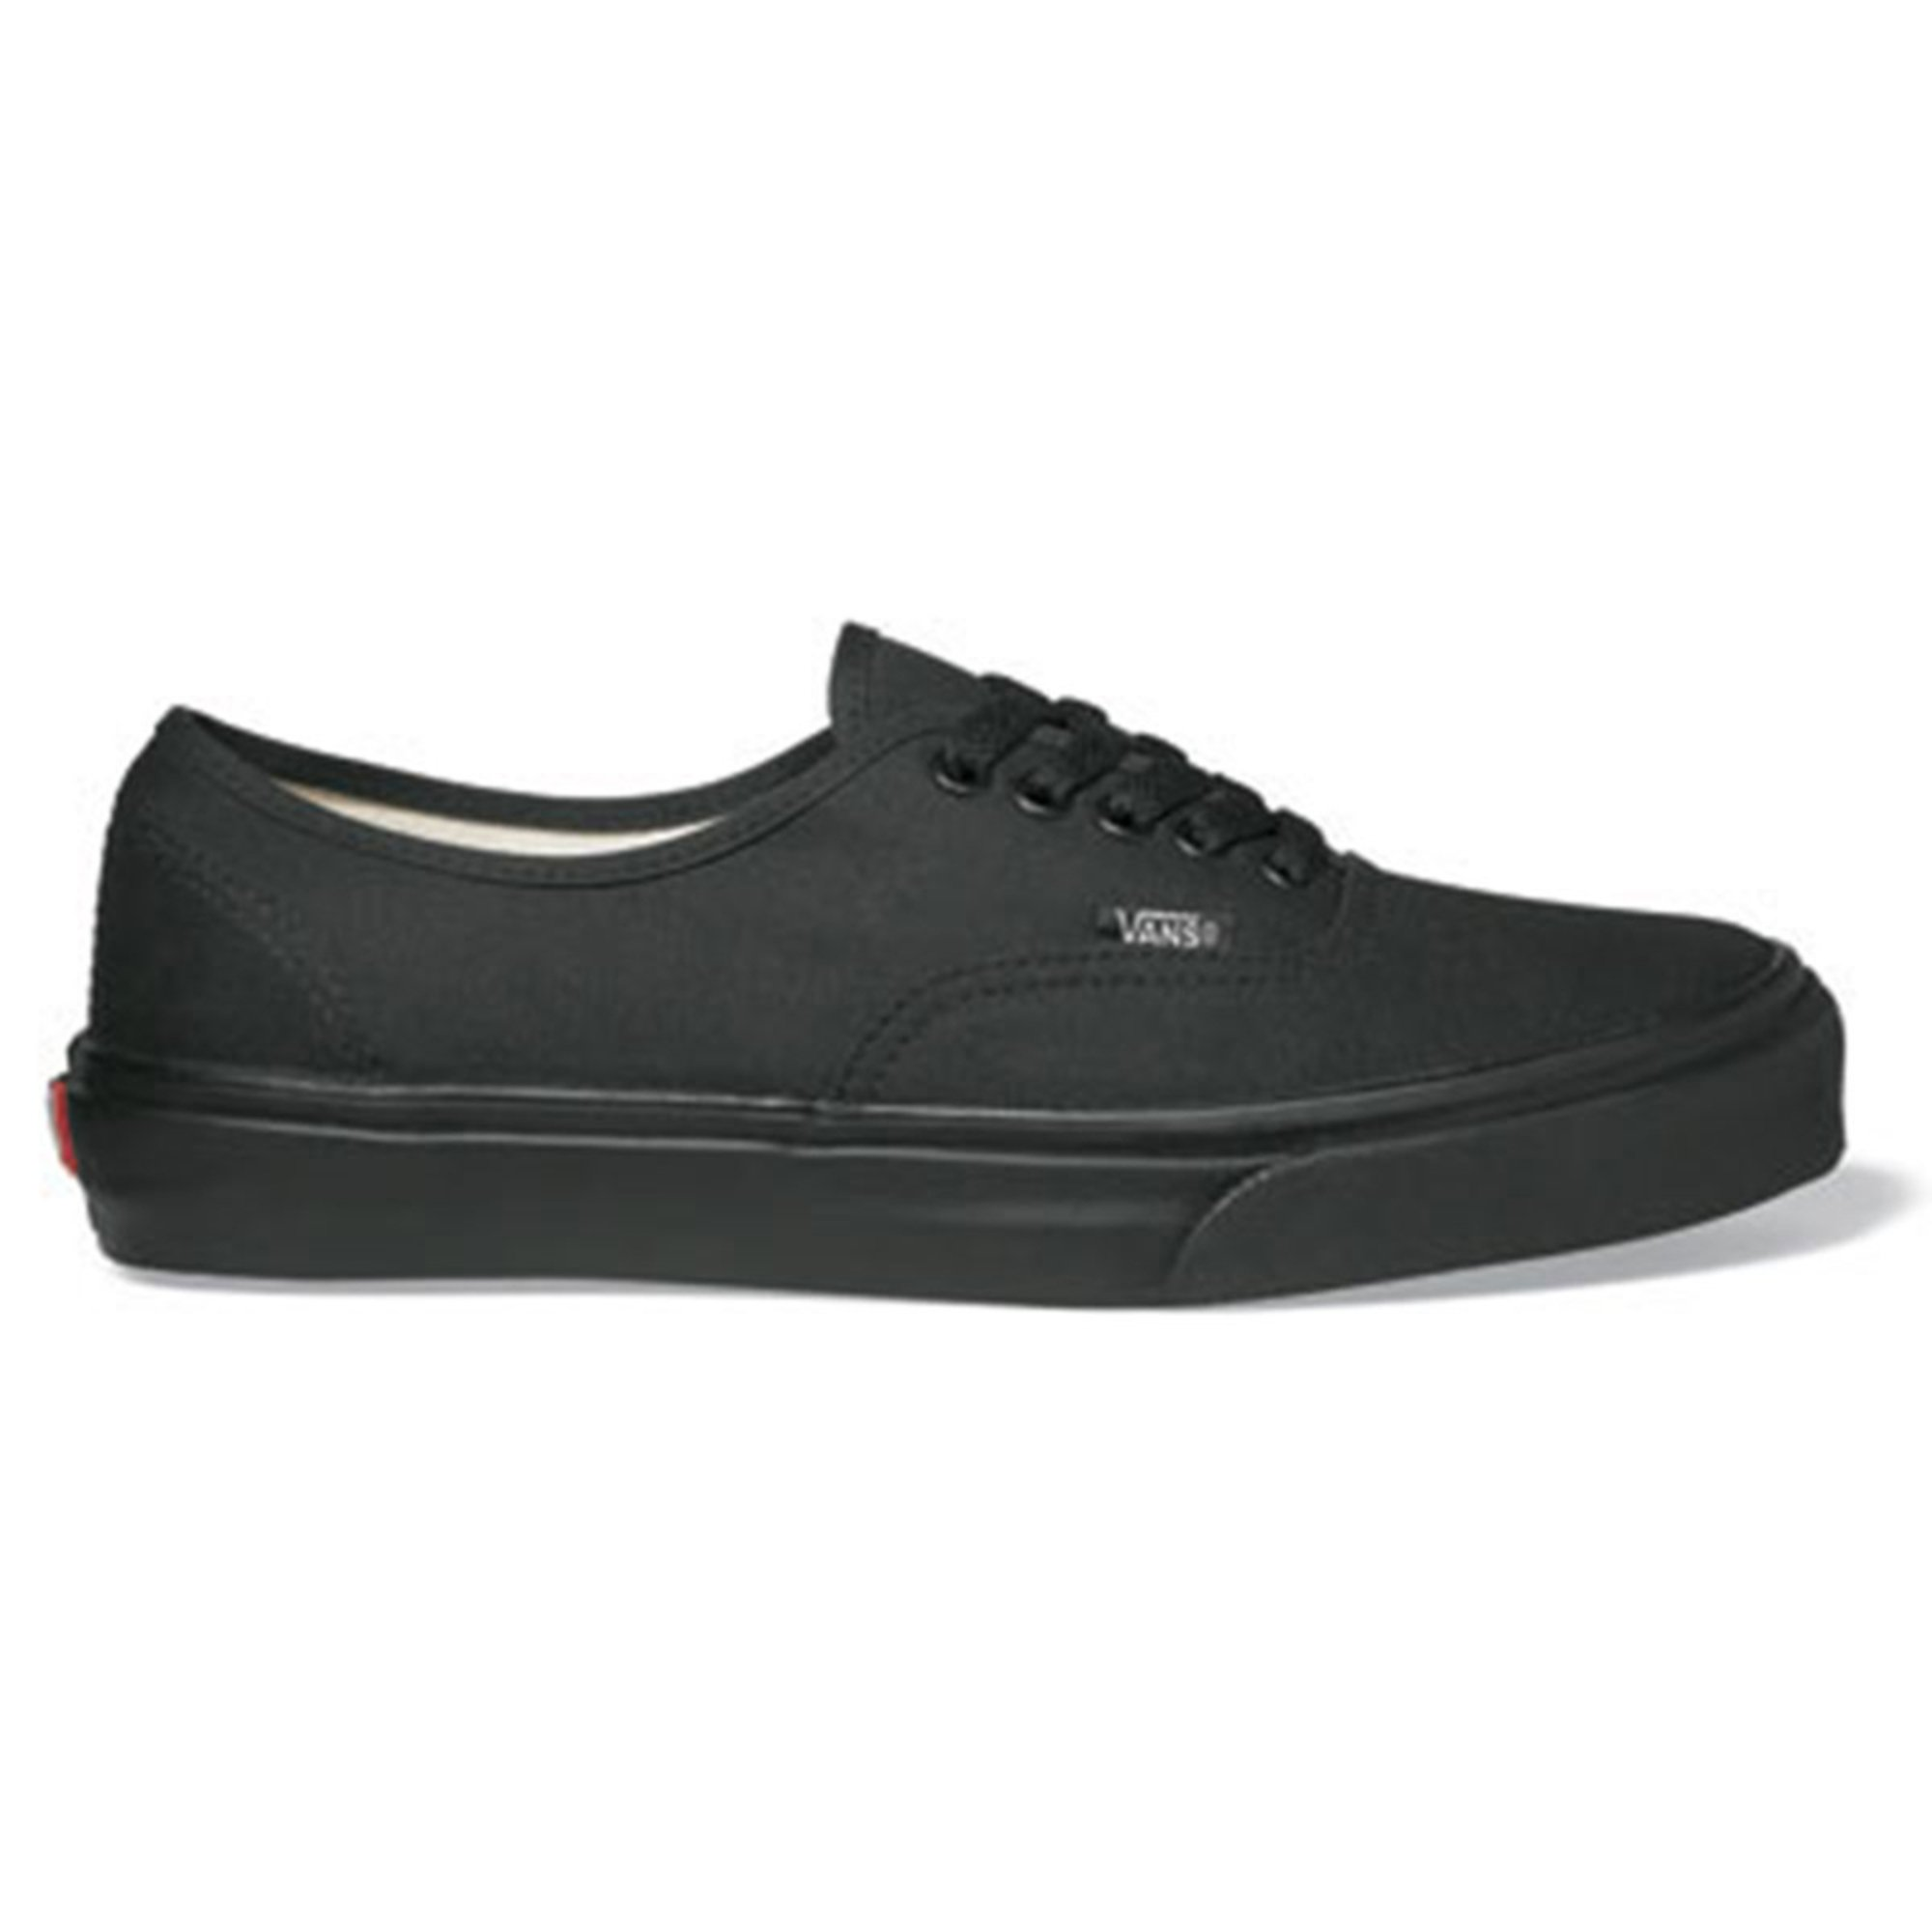 da67ea901a46 Vans. Vans Men s Authentic Skate Shoe